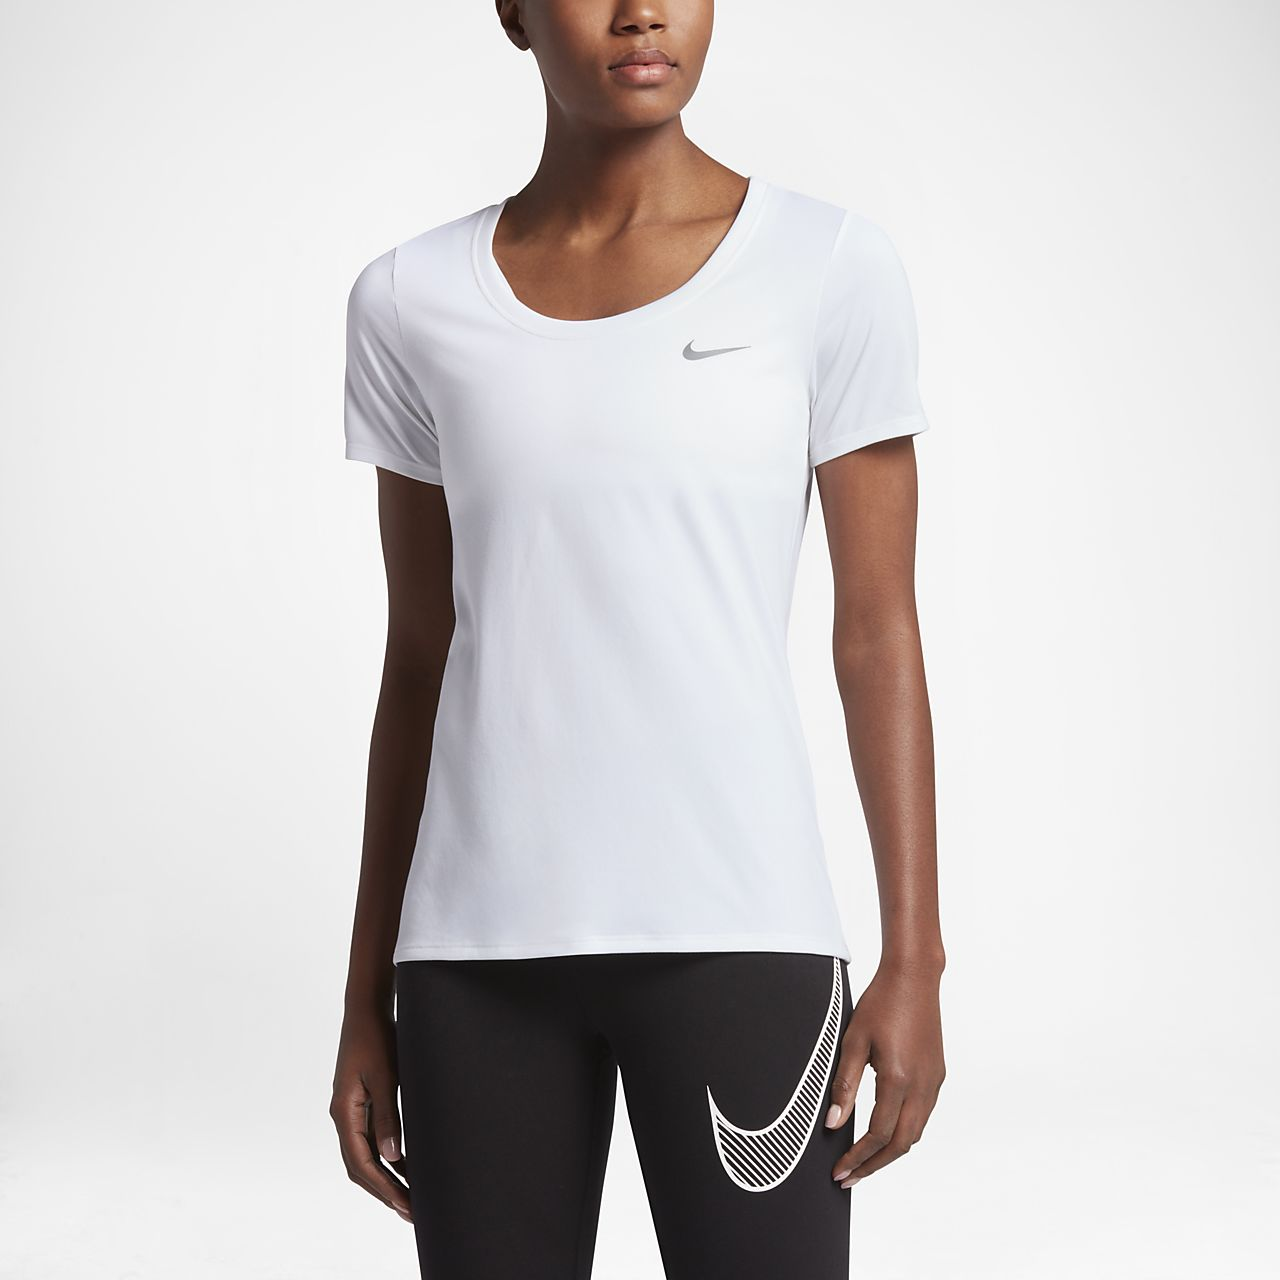 Nike Dri-FIT Women s Training T-Shirt. Nike.com 21d5e4b3ed